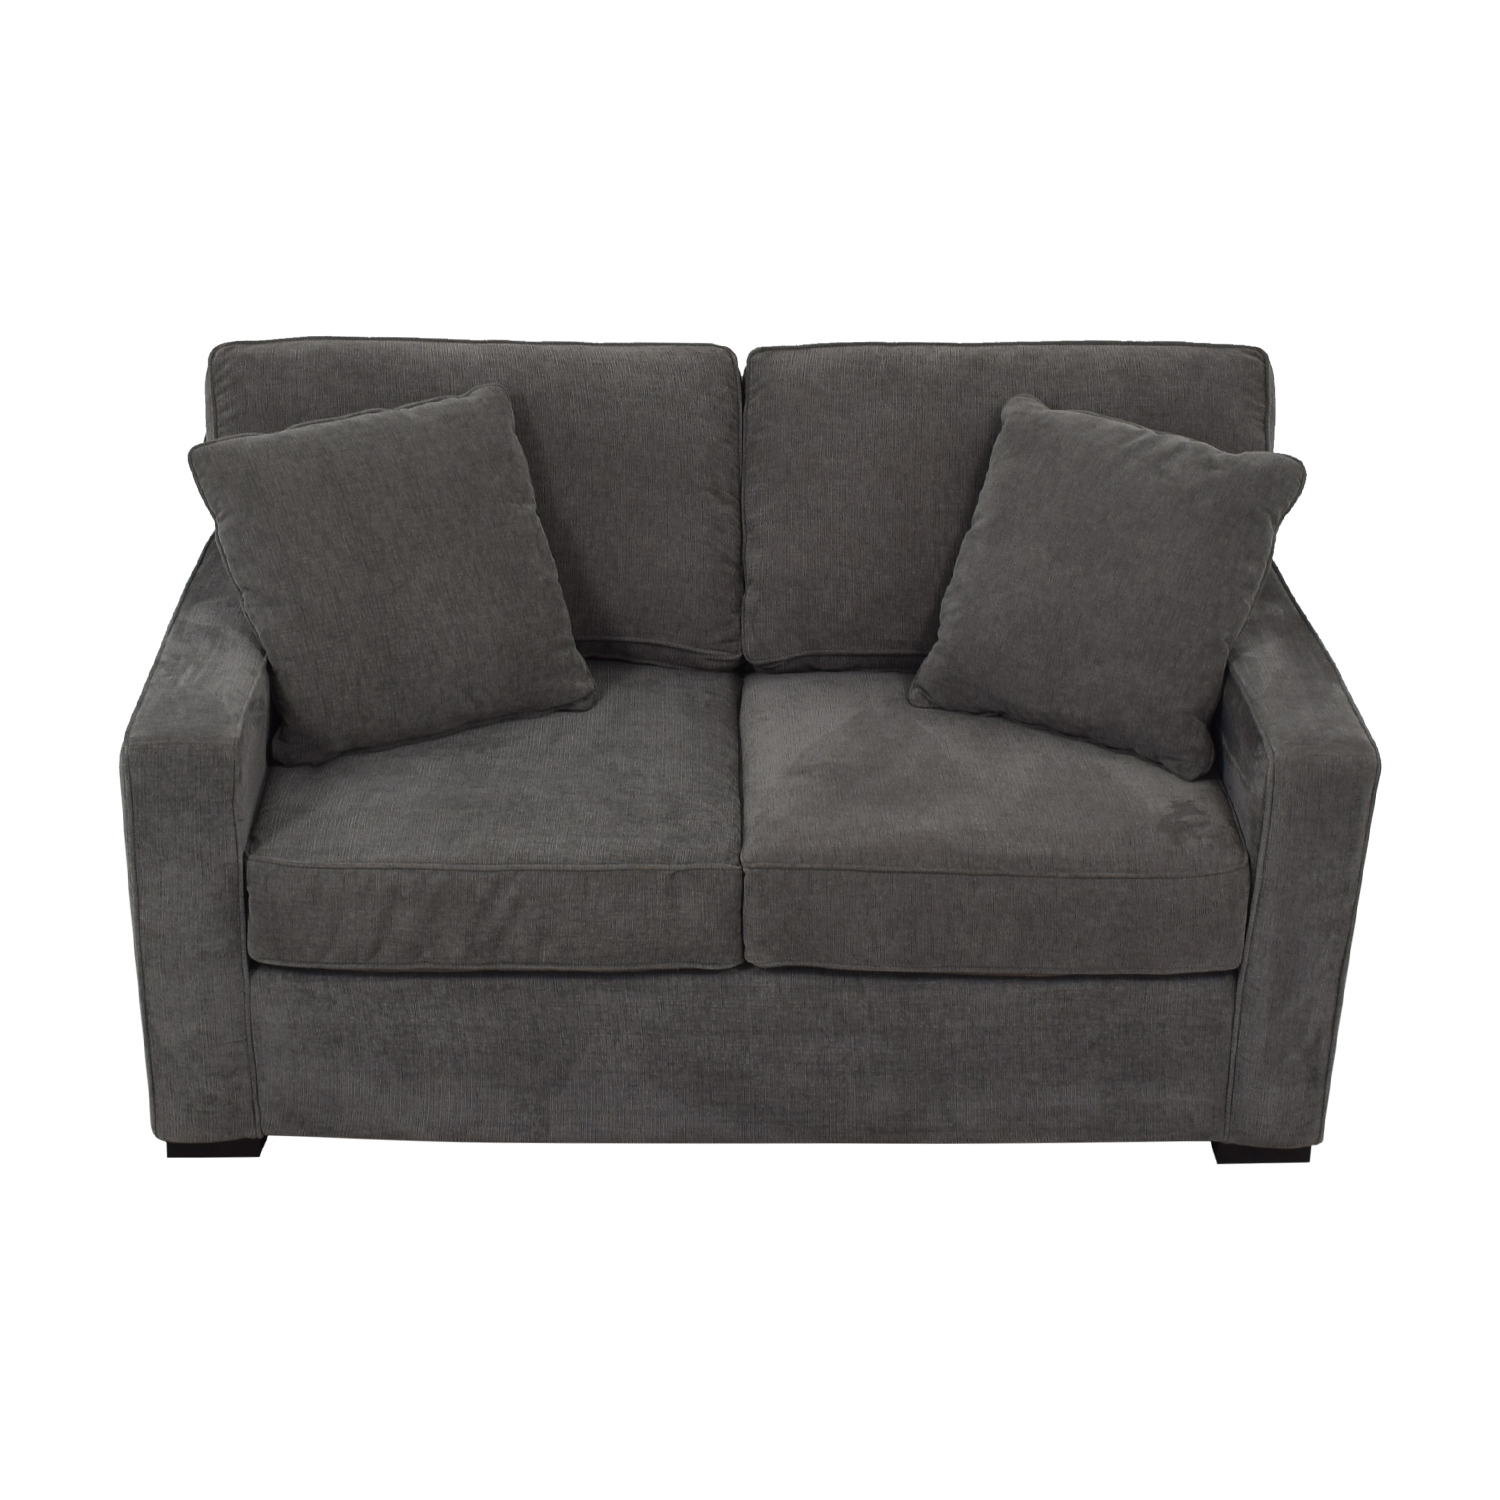 Macy's Grey Two-Cushion Loveseat / Loveseats